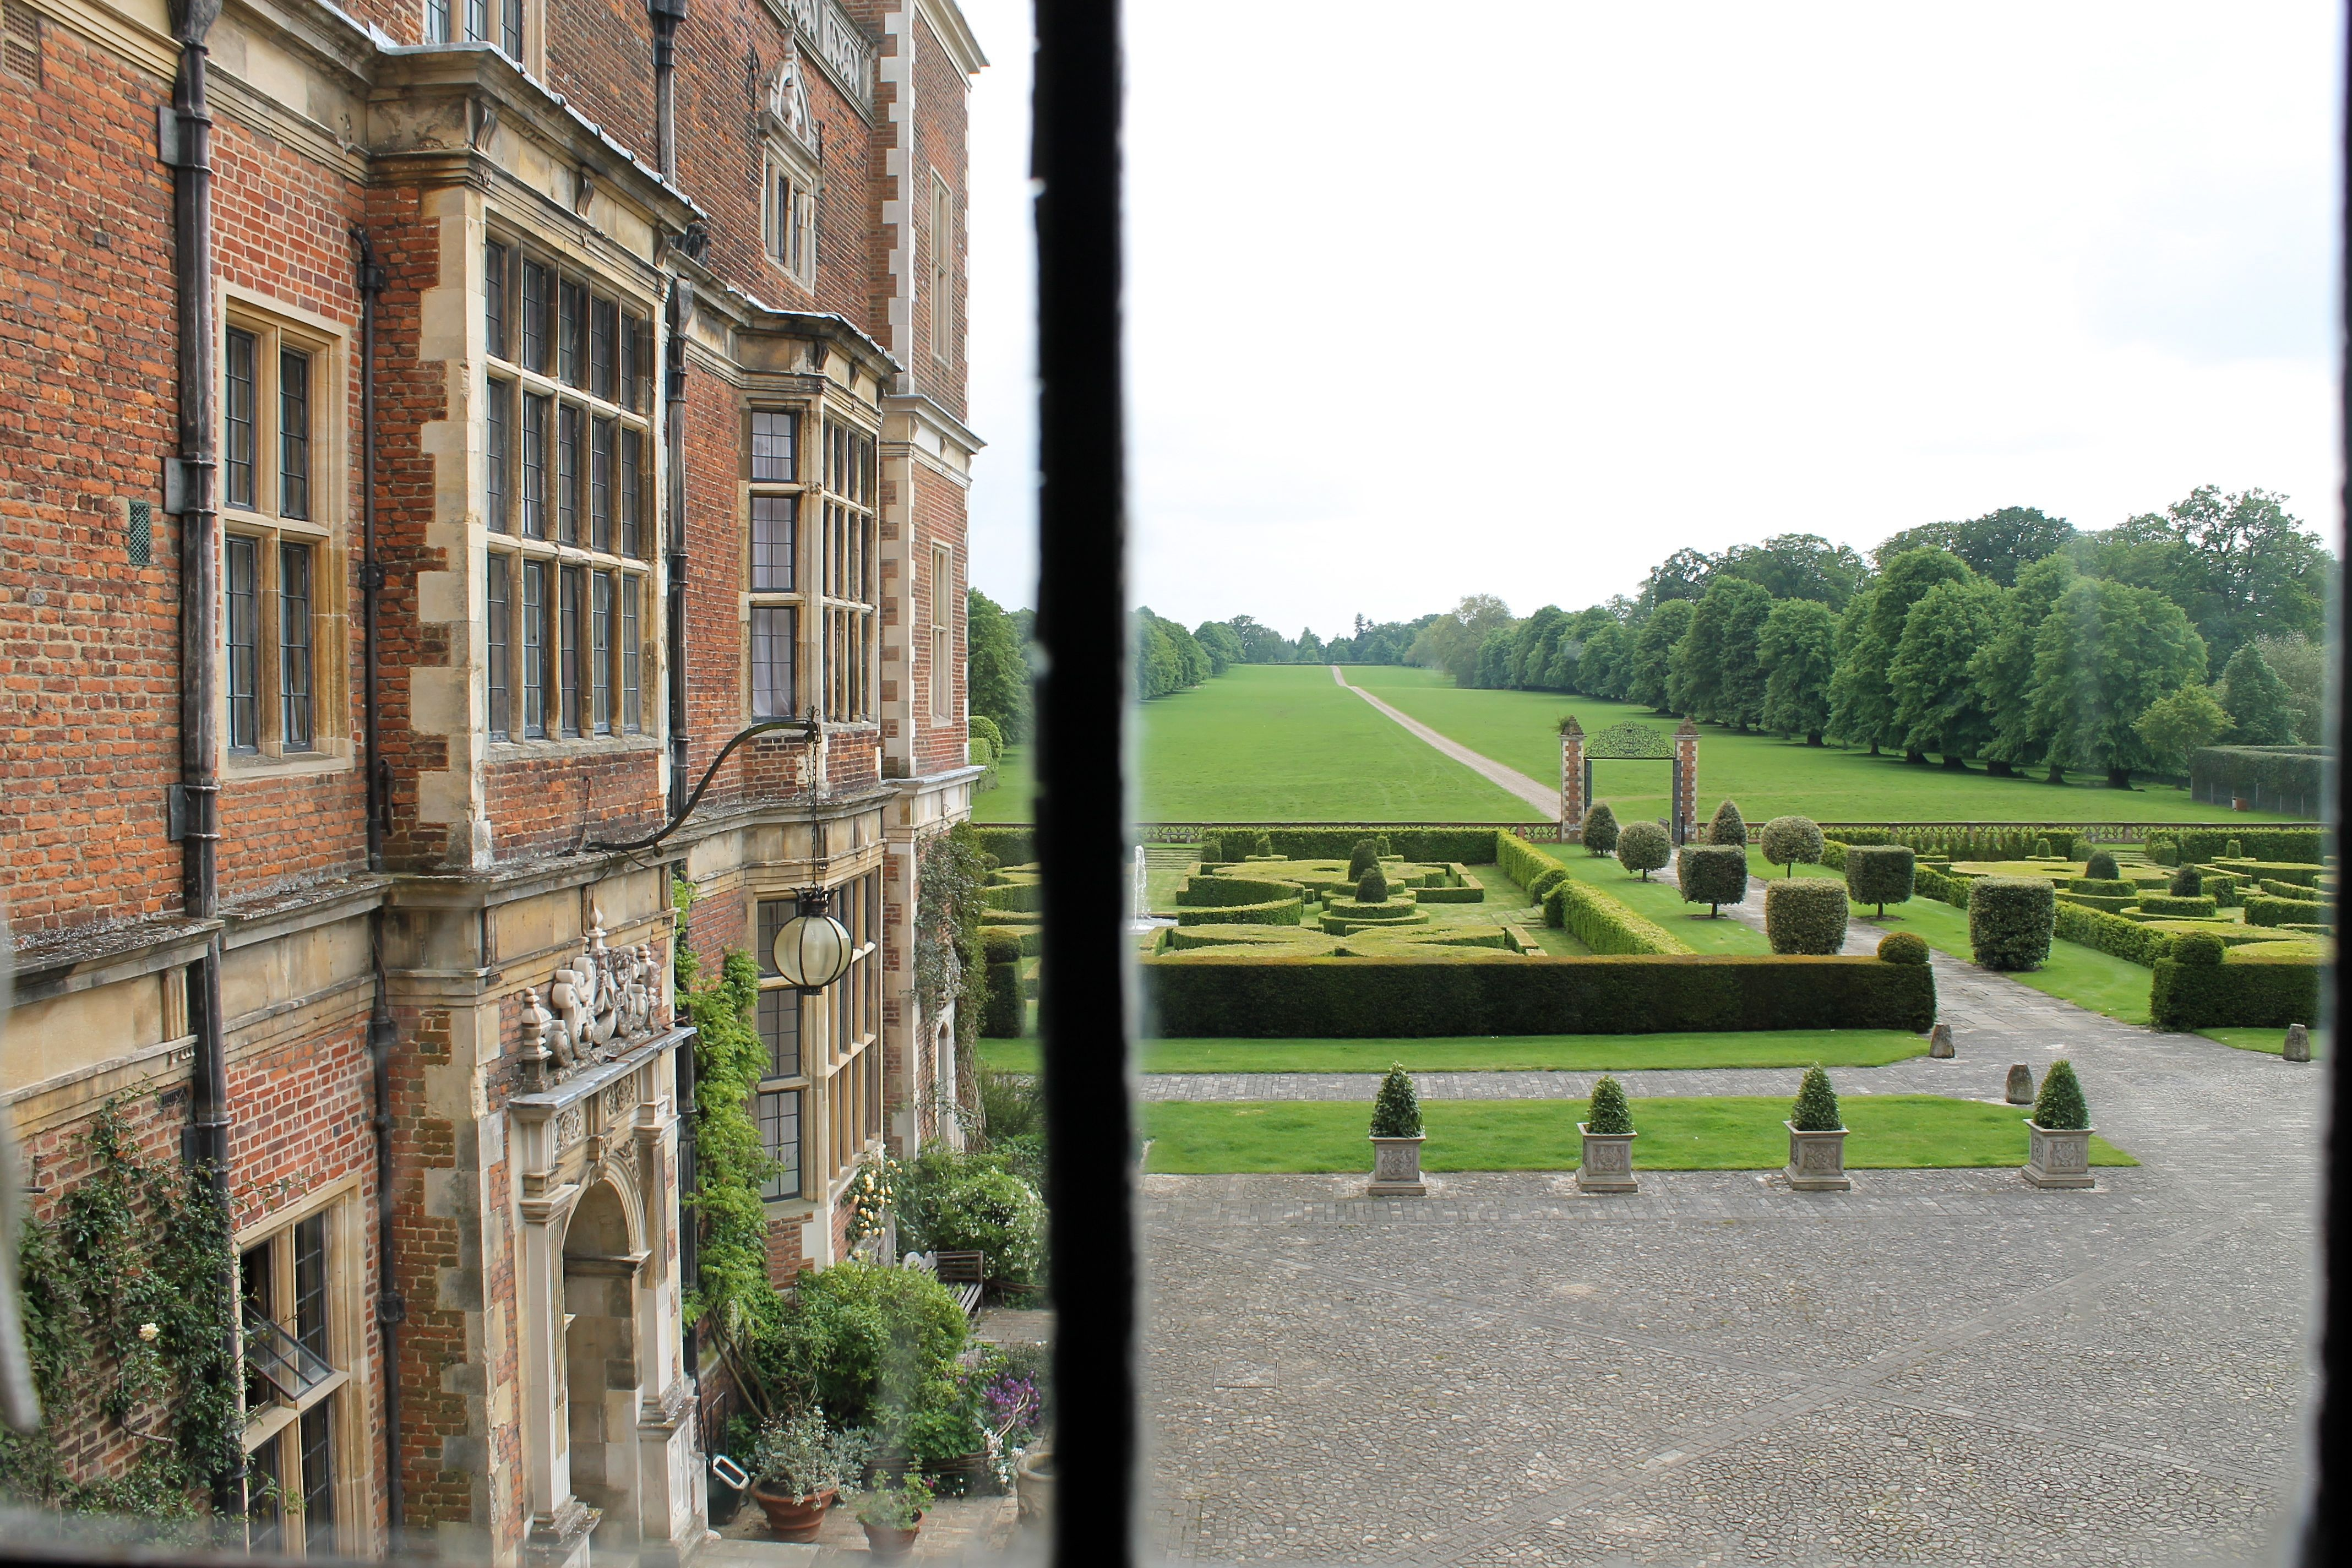 View from Hatfield House, Elizabeth's favorite palace.